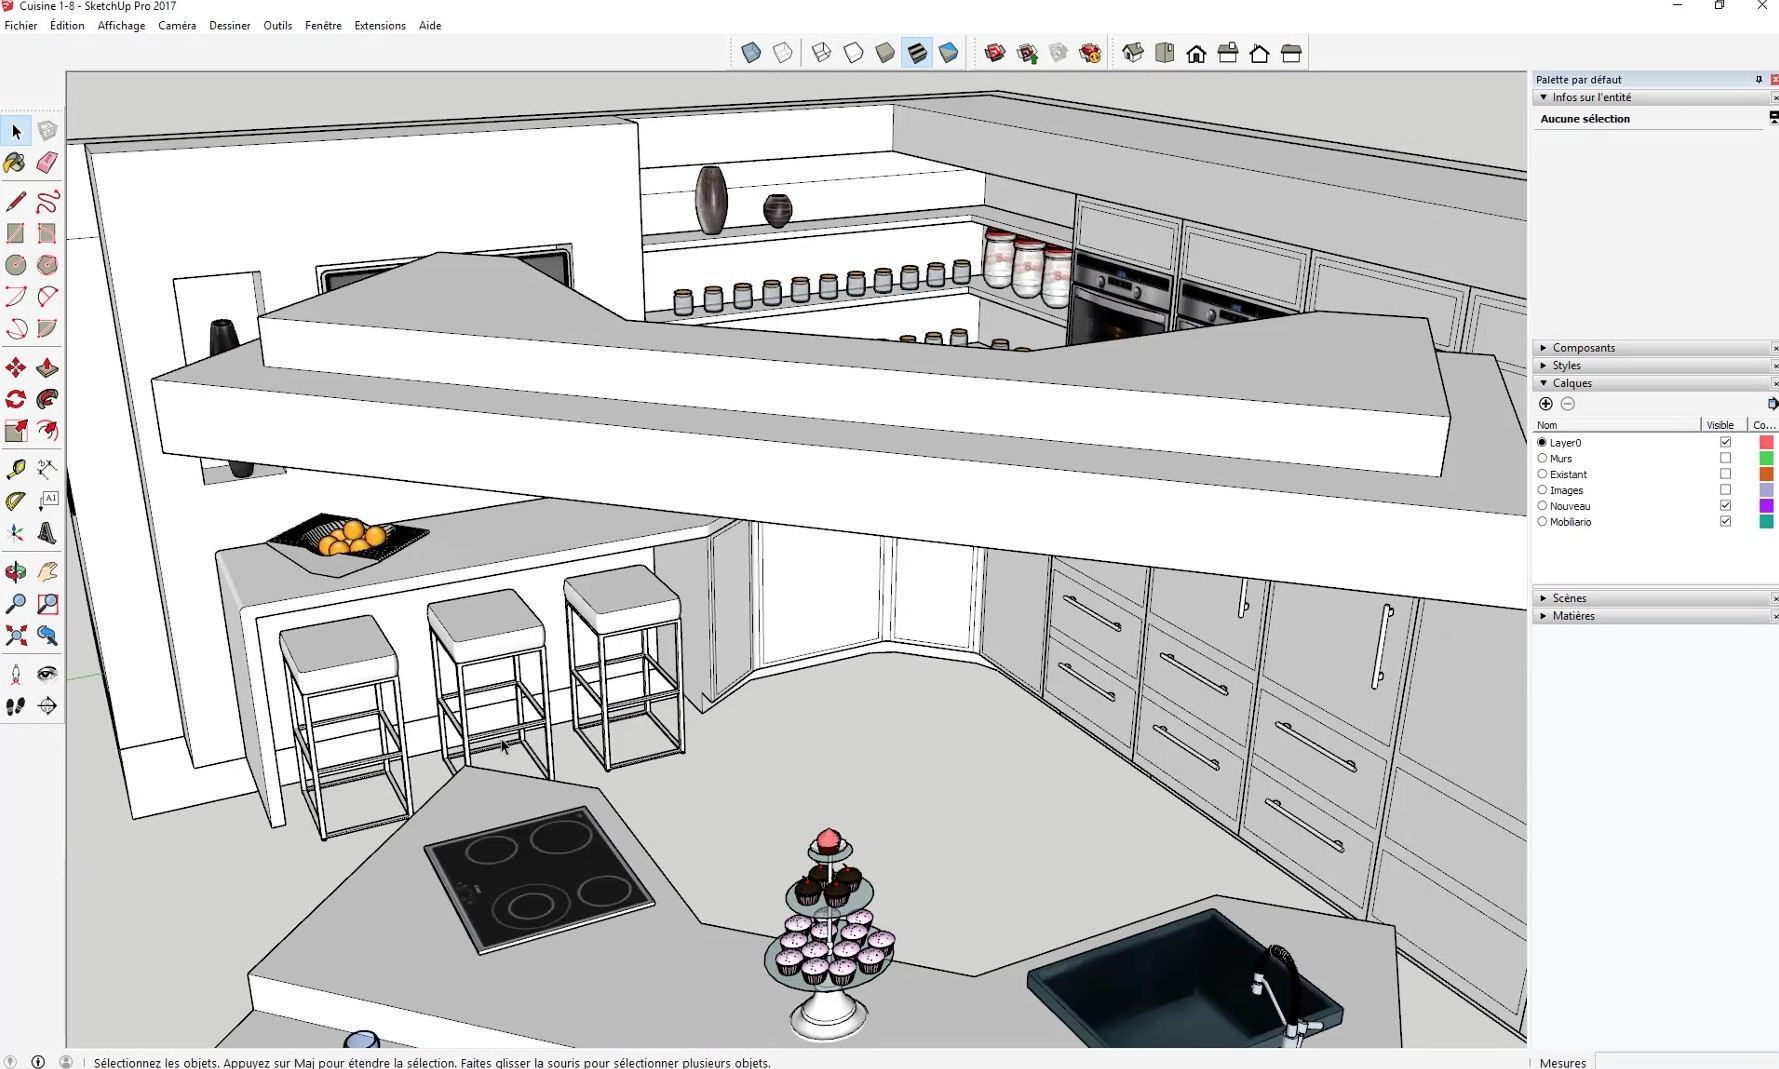 tuto r aliser sa cuisine dans sketchup formation am nagement d 39 int rieur avec sketchup 2017. Black Bedroom Furniture Sets. Home Design Ideas